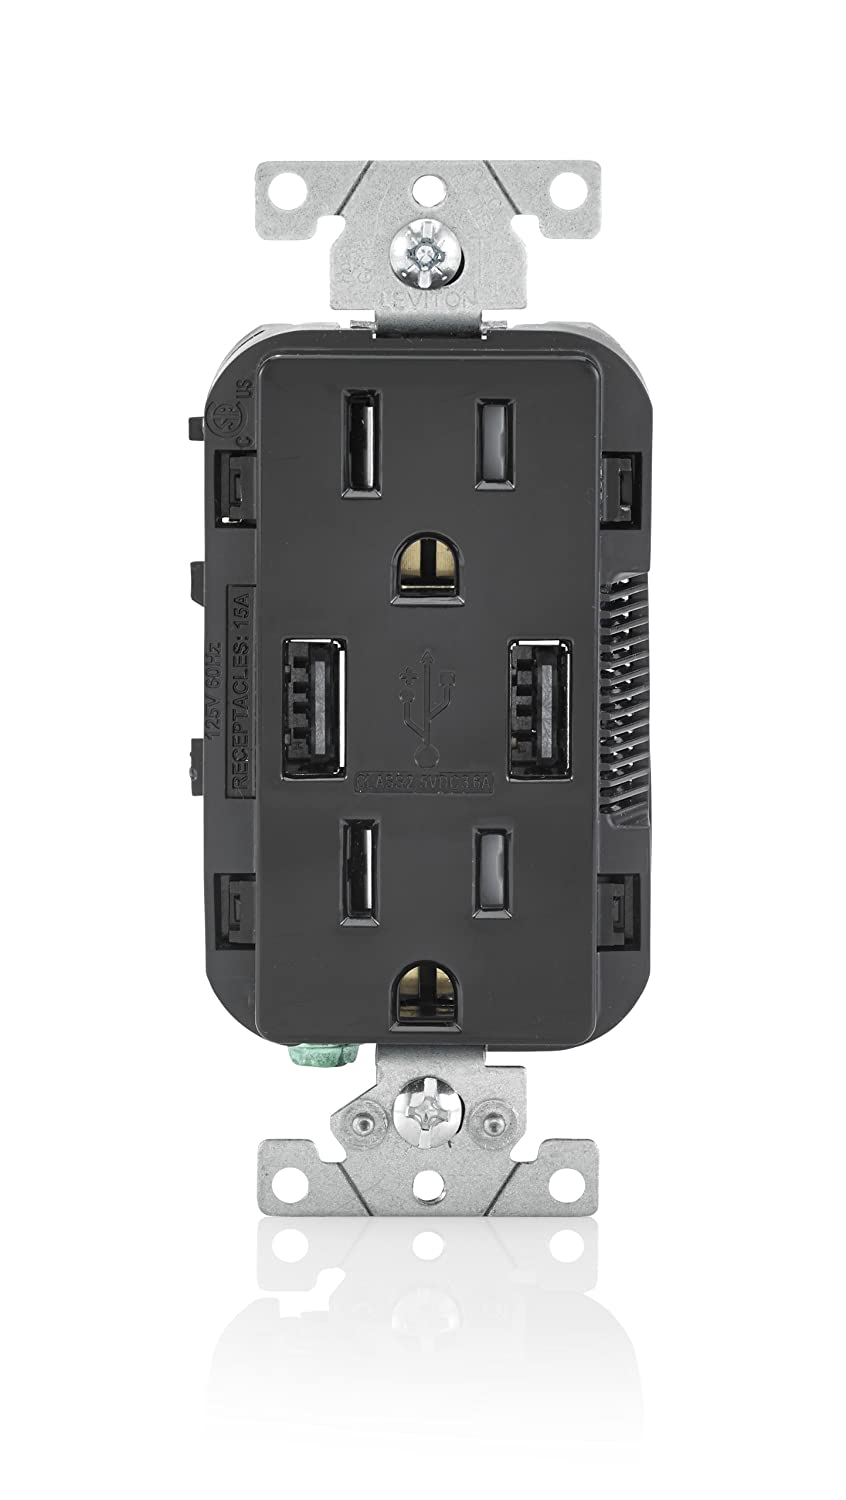 Leviton T5632 E 15 Amp Usb Charger Tamper Resistant Duplex Wiring An Outlet In Middle Of Circuit Receptacle Black